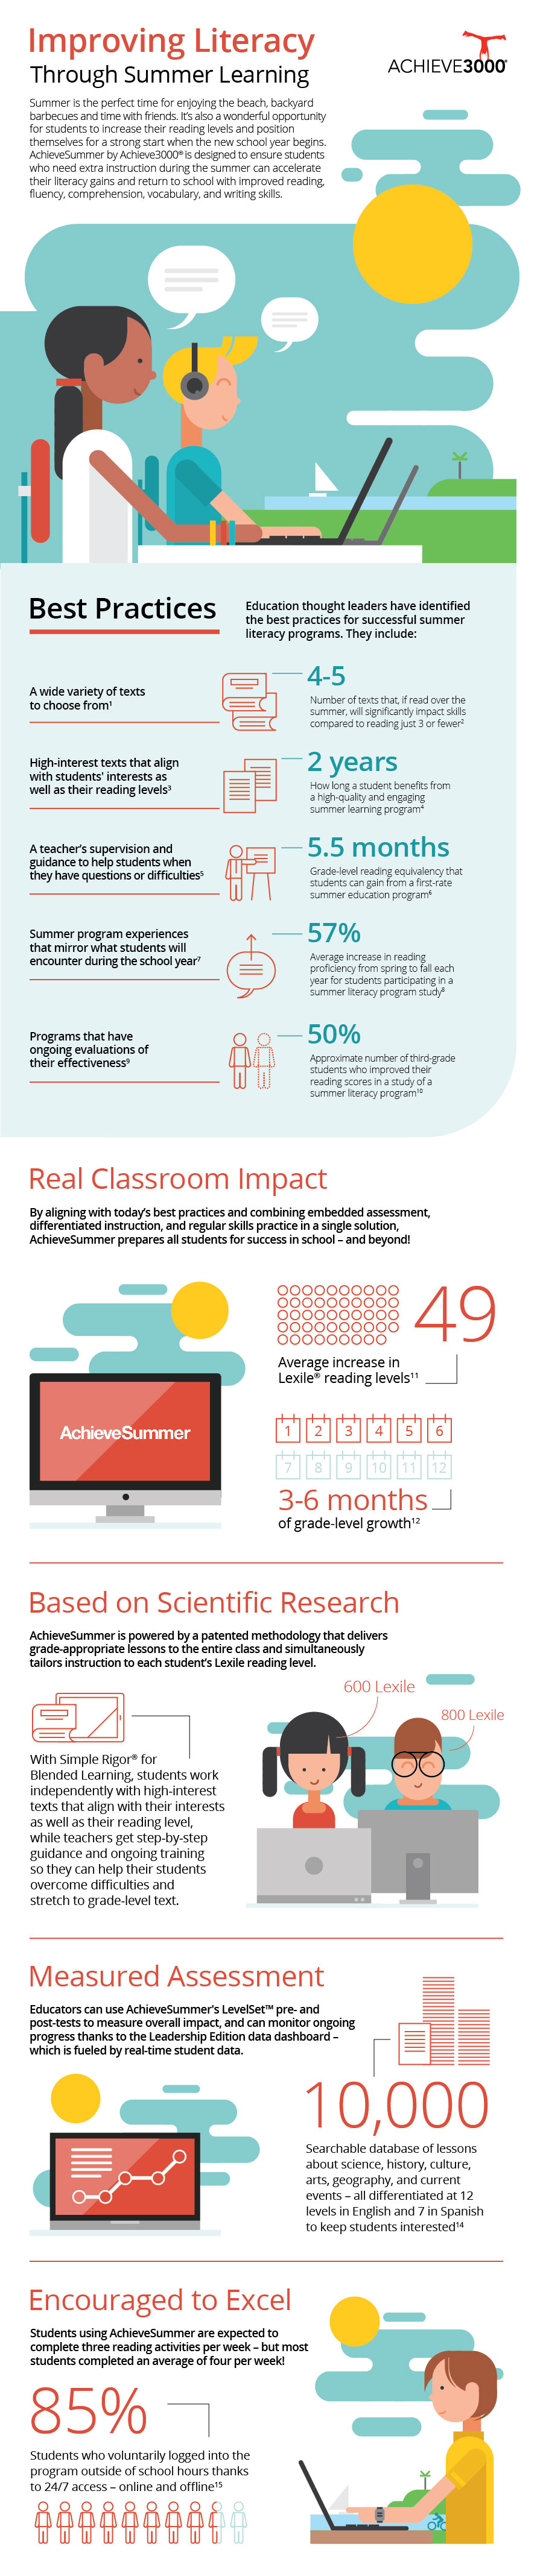 How to improve literacy through summer reading #infographic